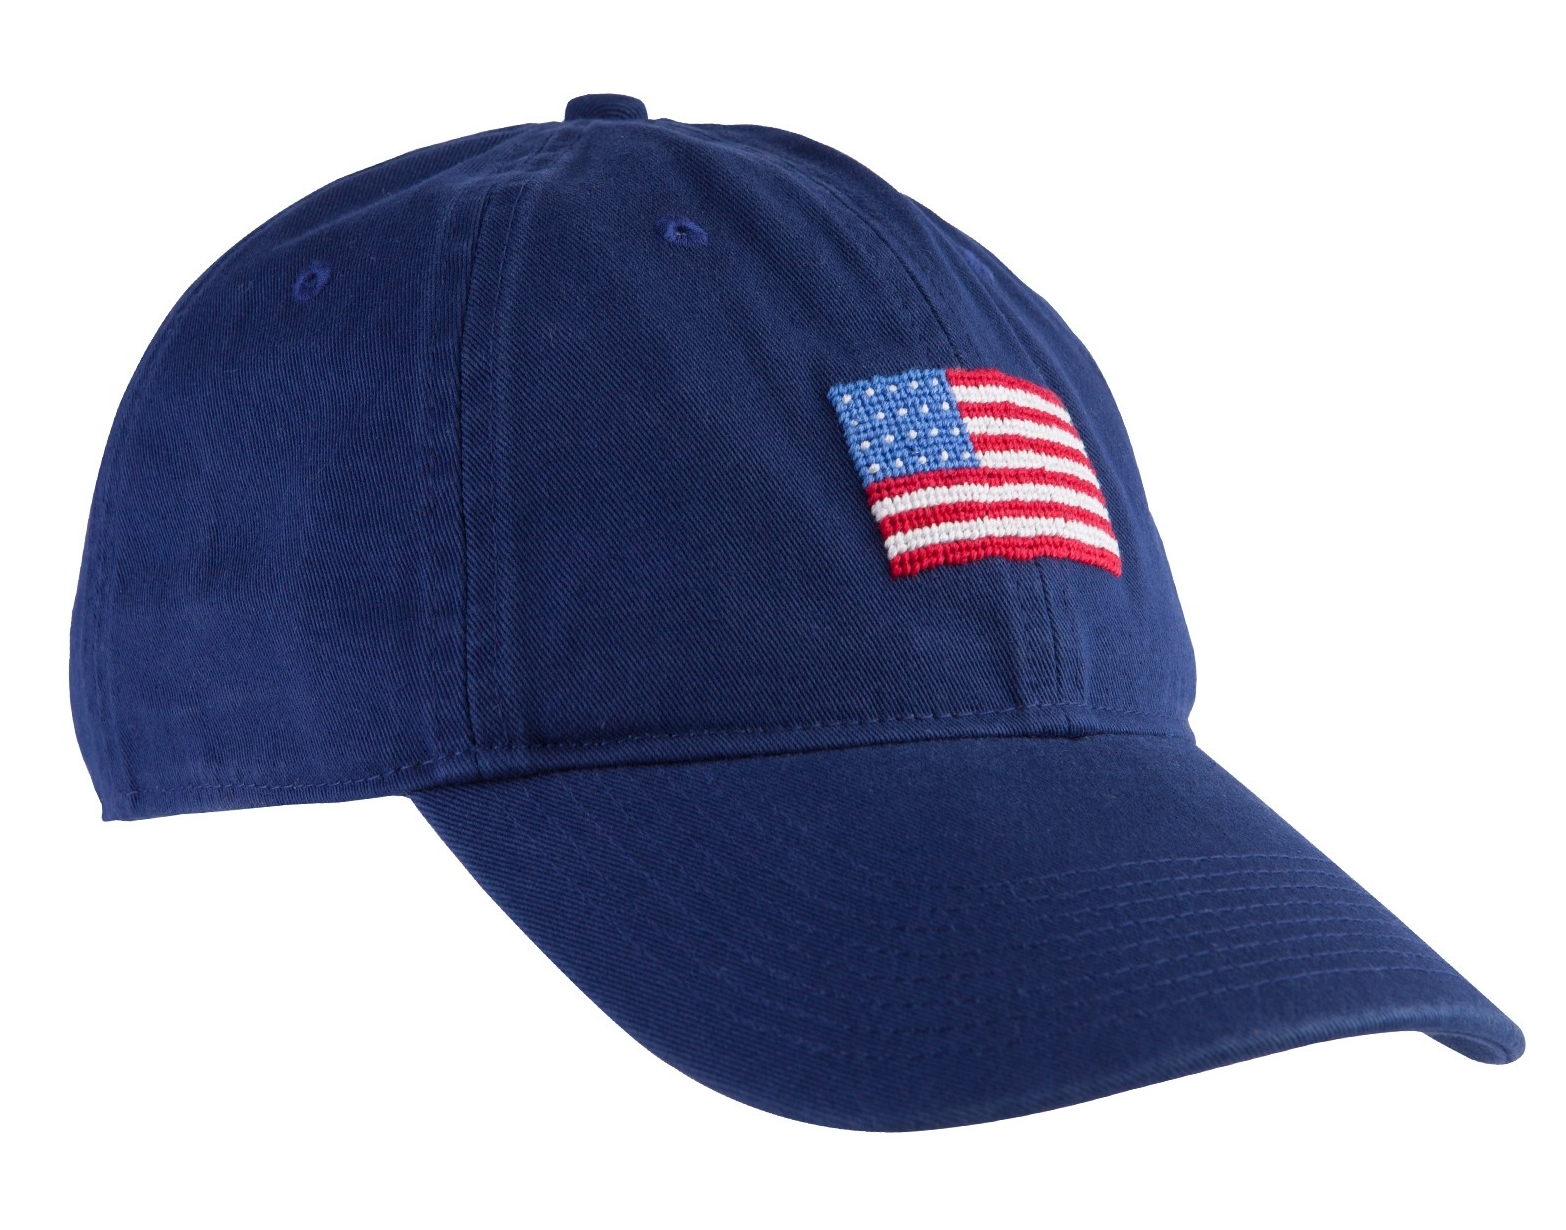 Needlepoint America Hat